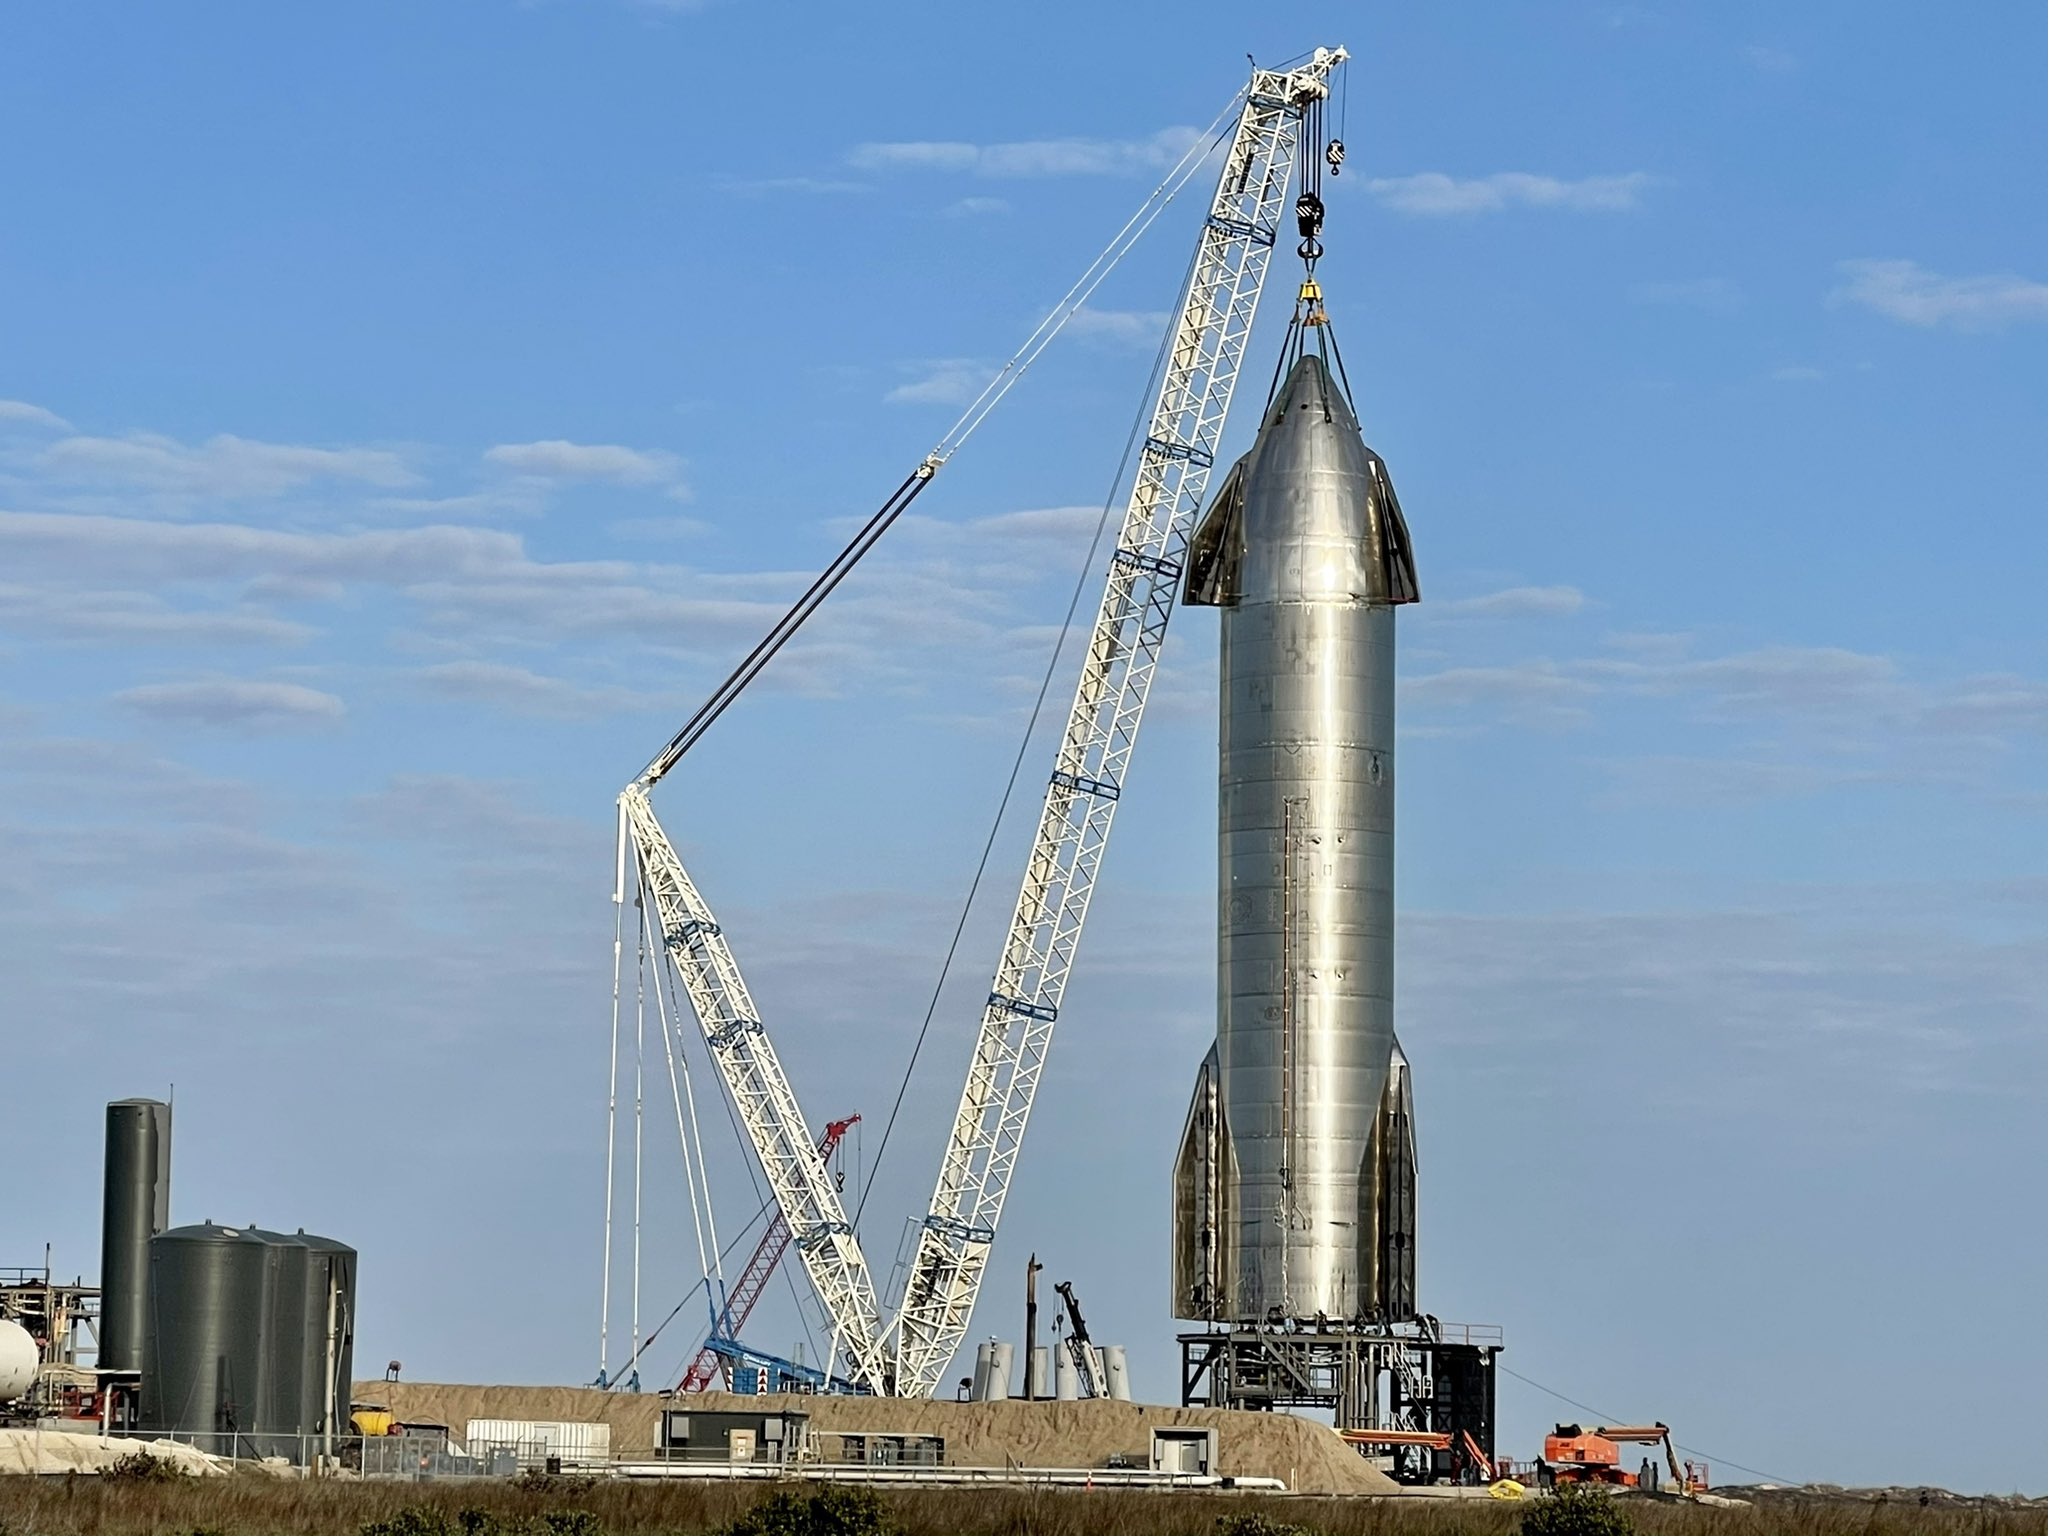 Starship SN11 prepares for rollout as SpaceX plans for the future - NASASpaceFlight.com - NASASpaceflight.com